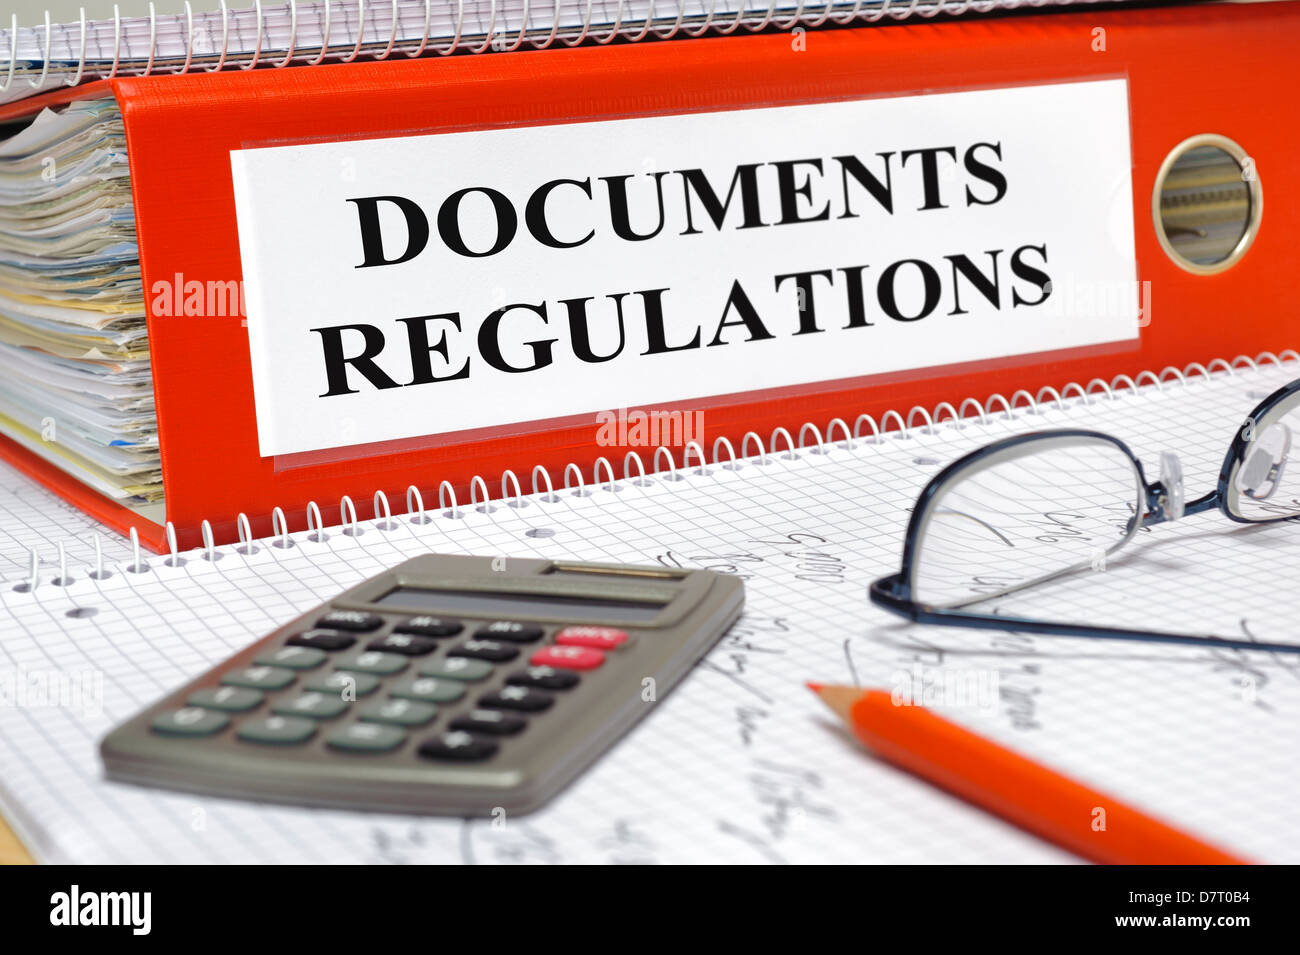 folder marked with documents and regulations - Stock Image